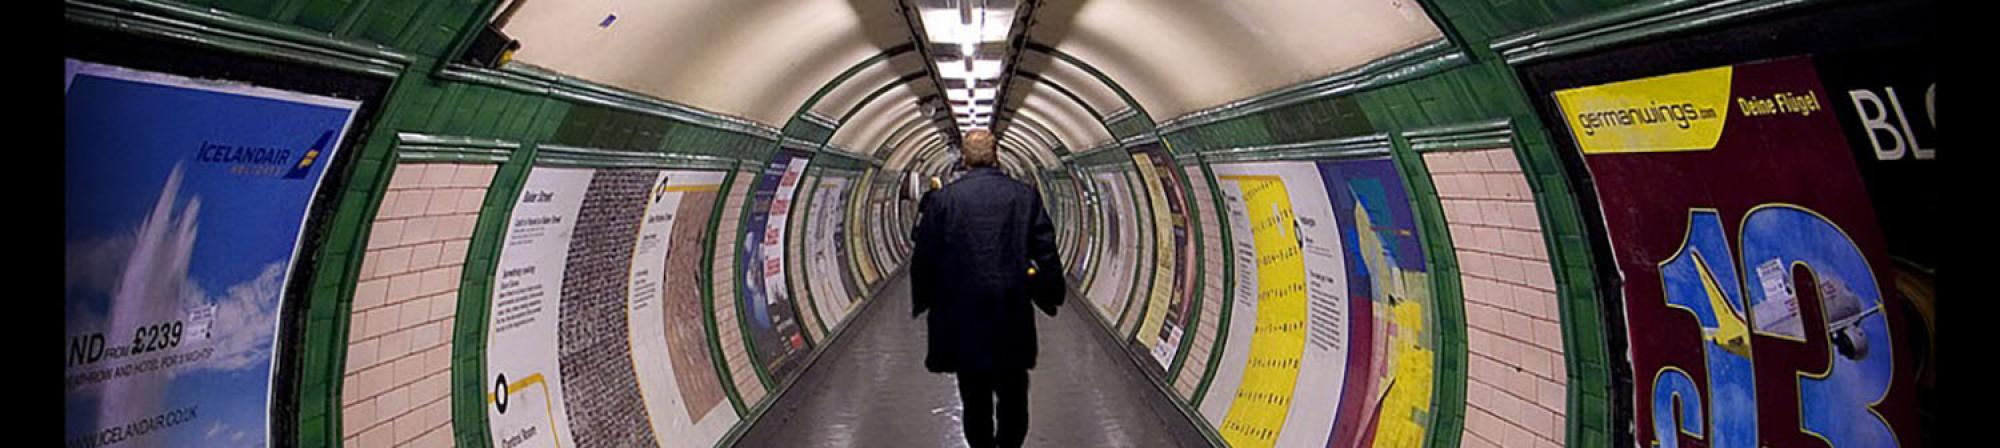 Man walking in London subway (Tube)